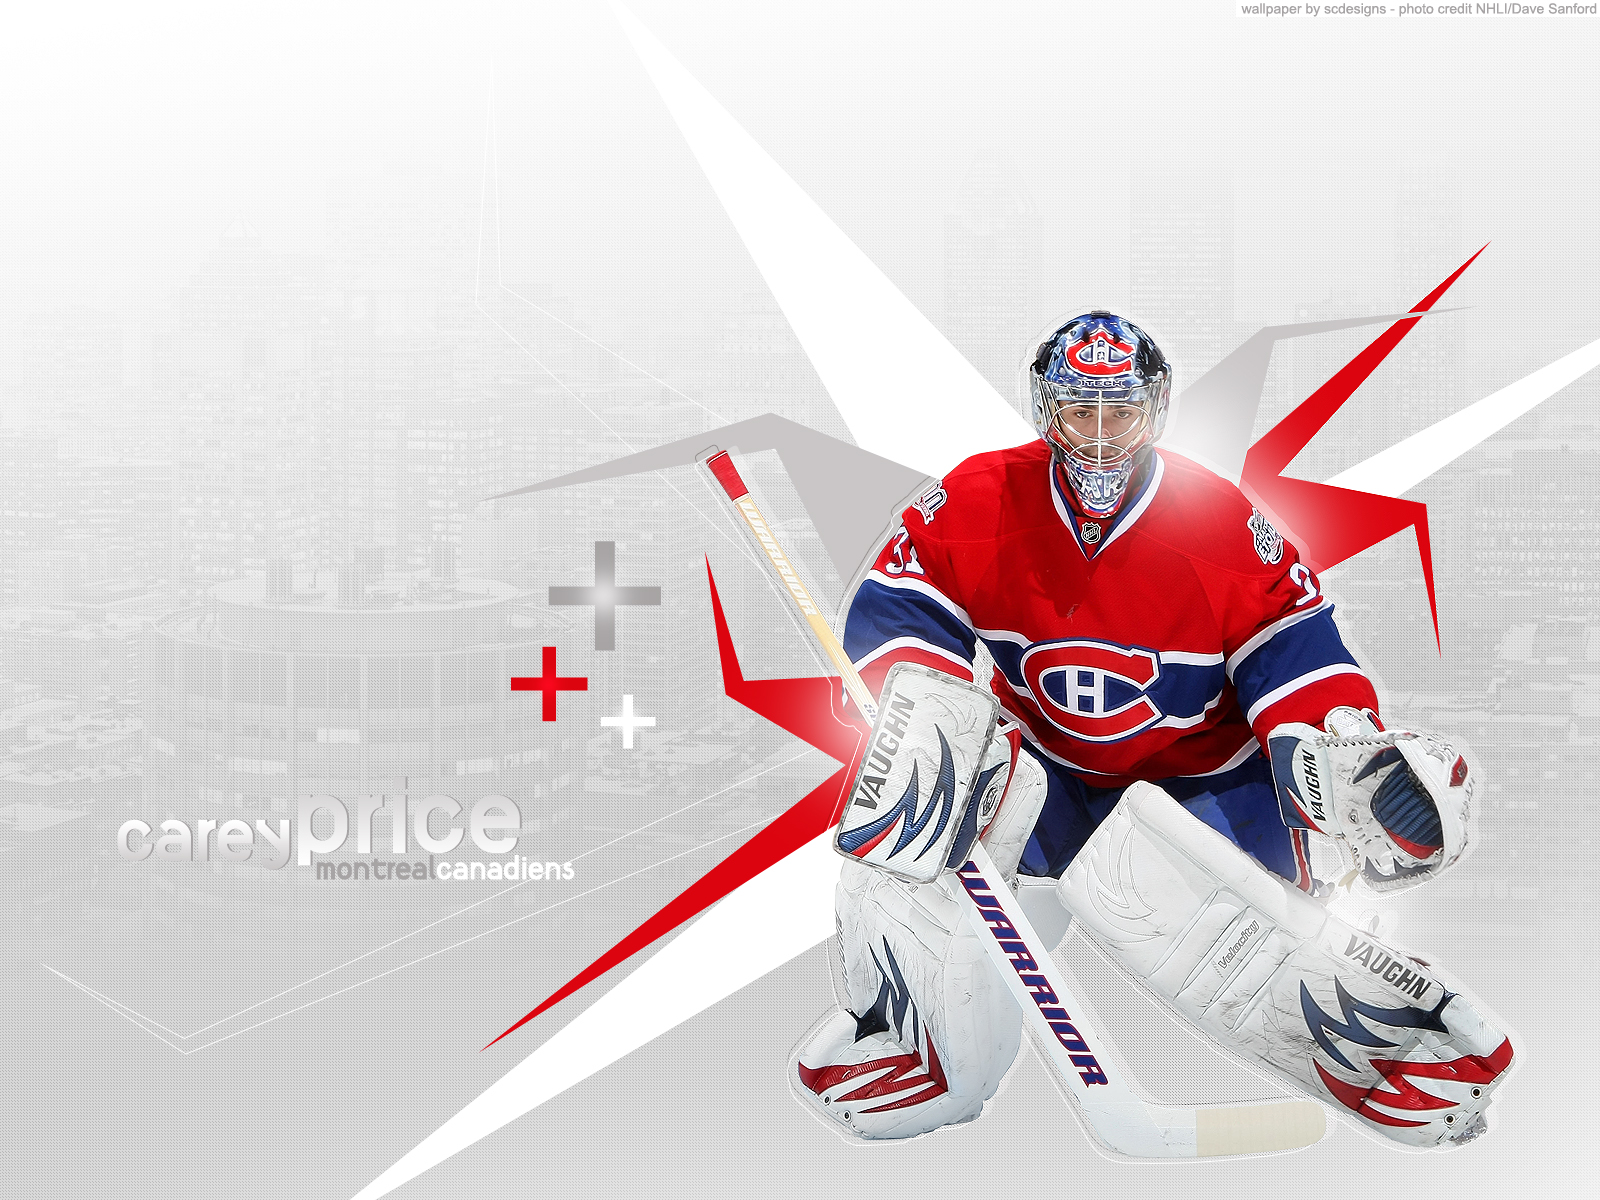 ... Wallpaper Carey Price [PHOTOSHOP] by sam41